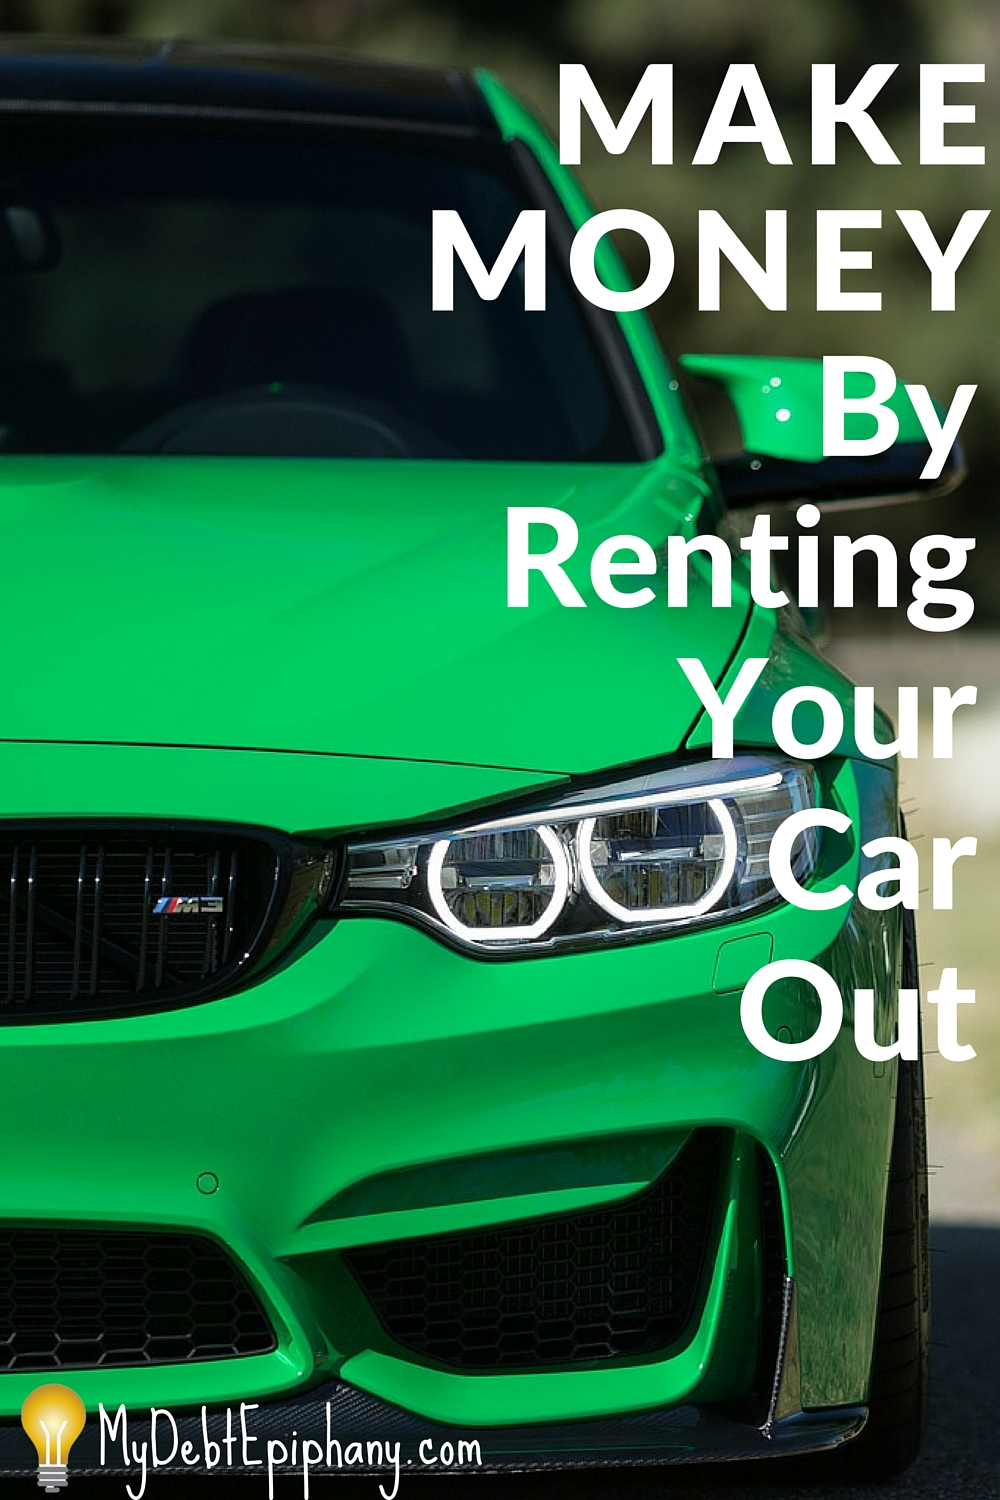 Make Money by Renting Your Car Out   My Debt Epiphany